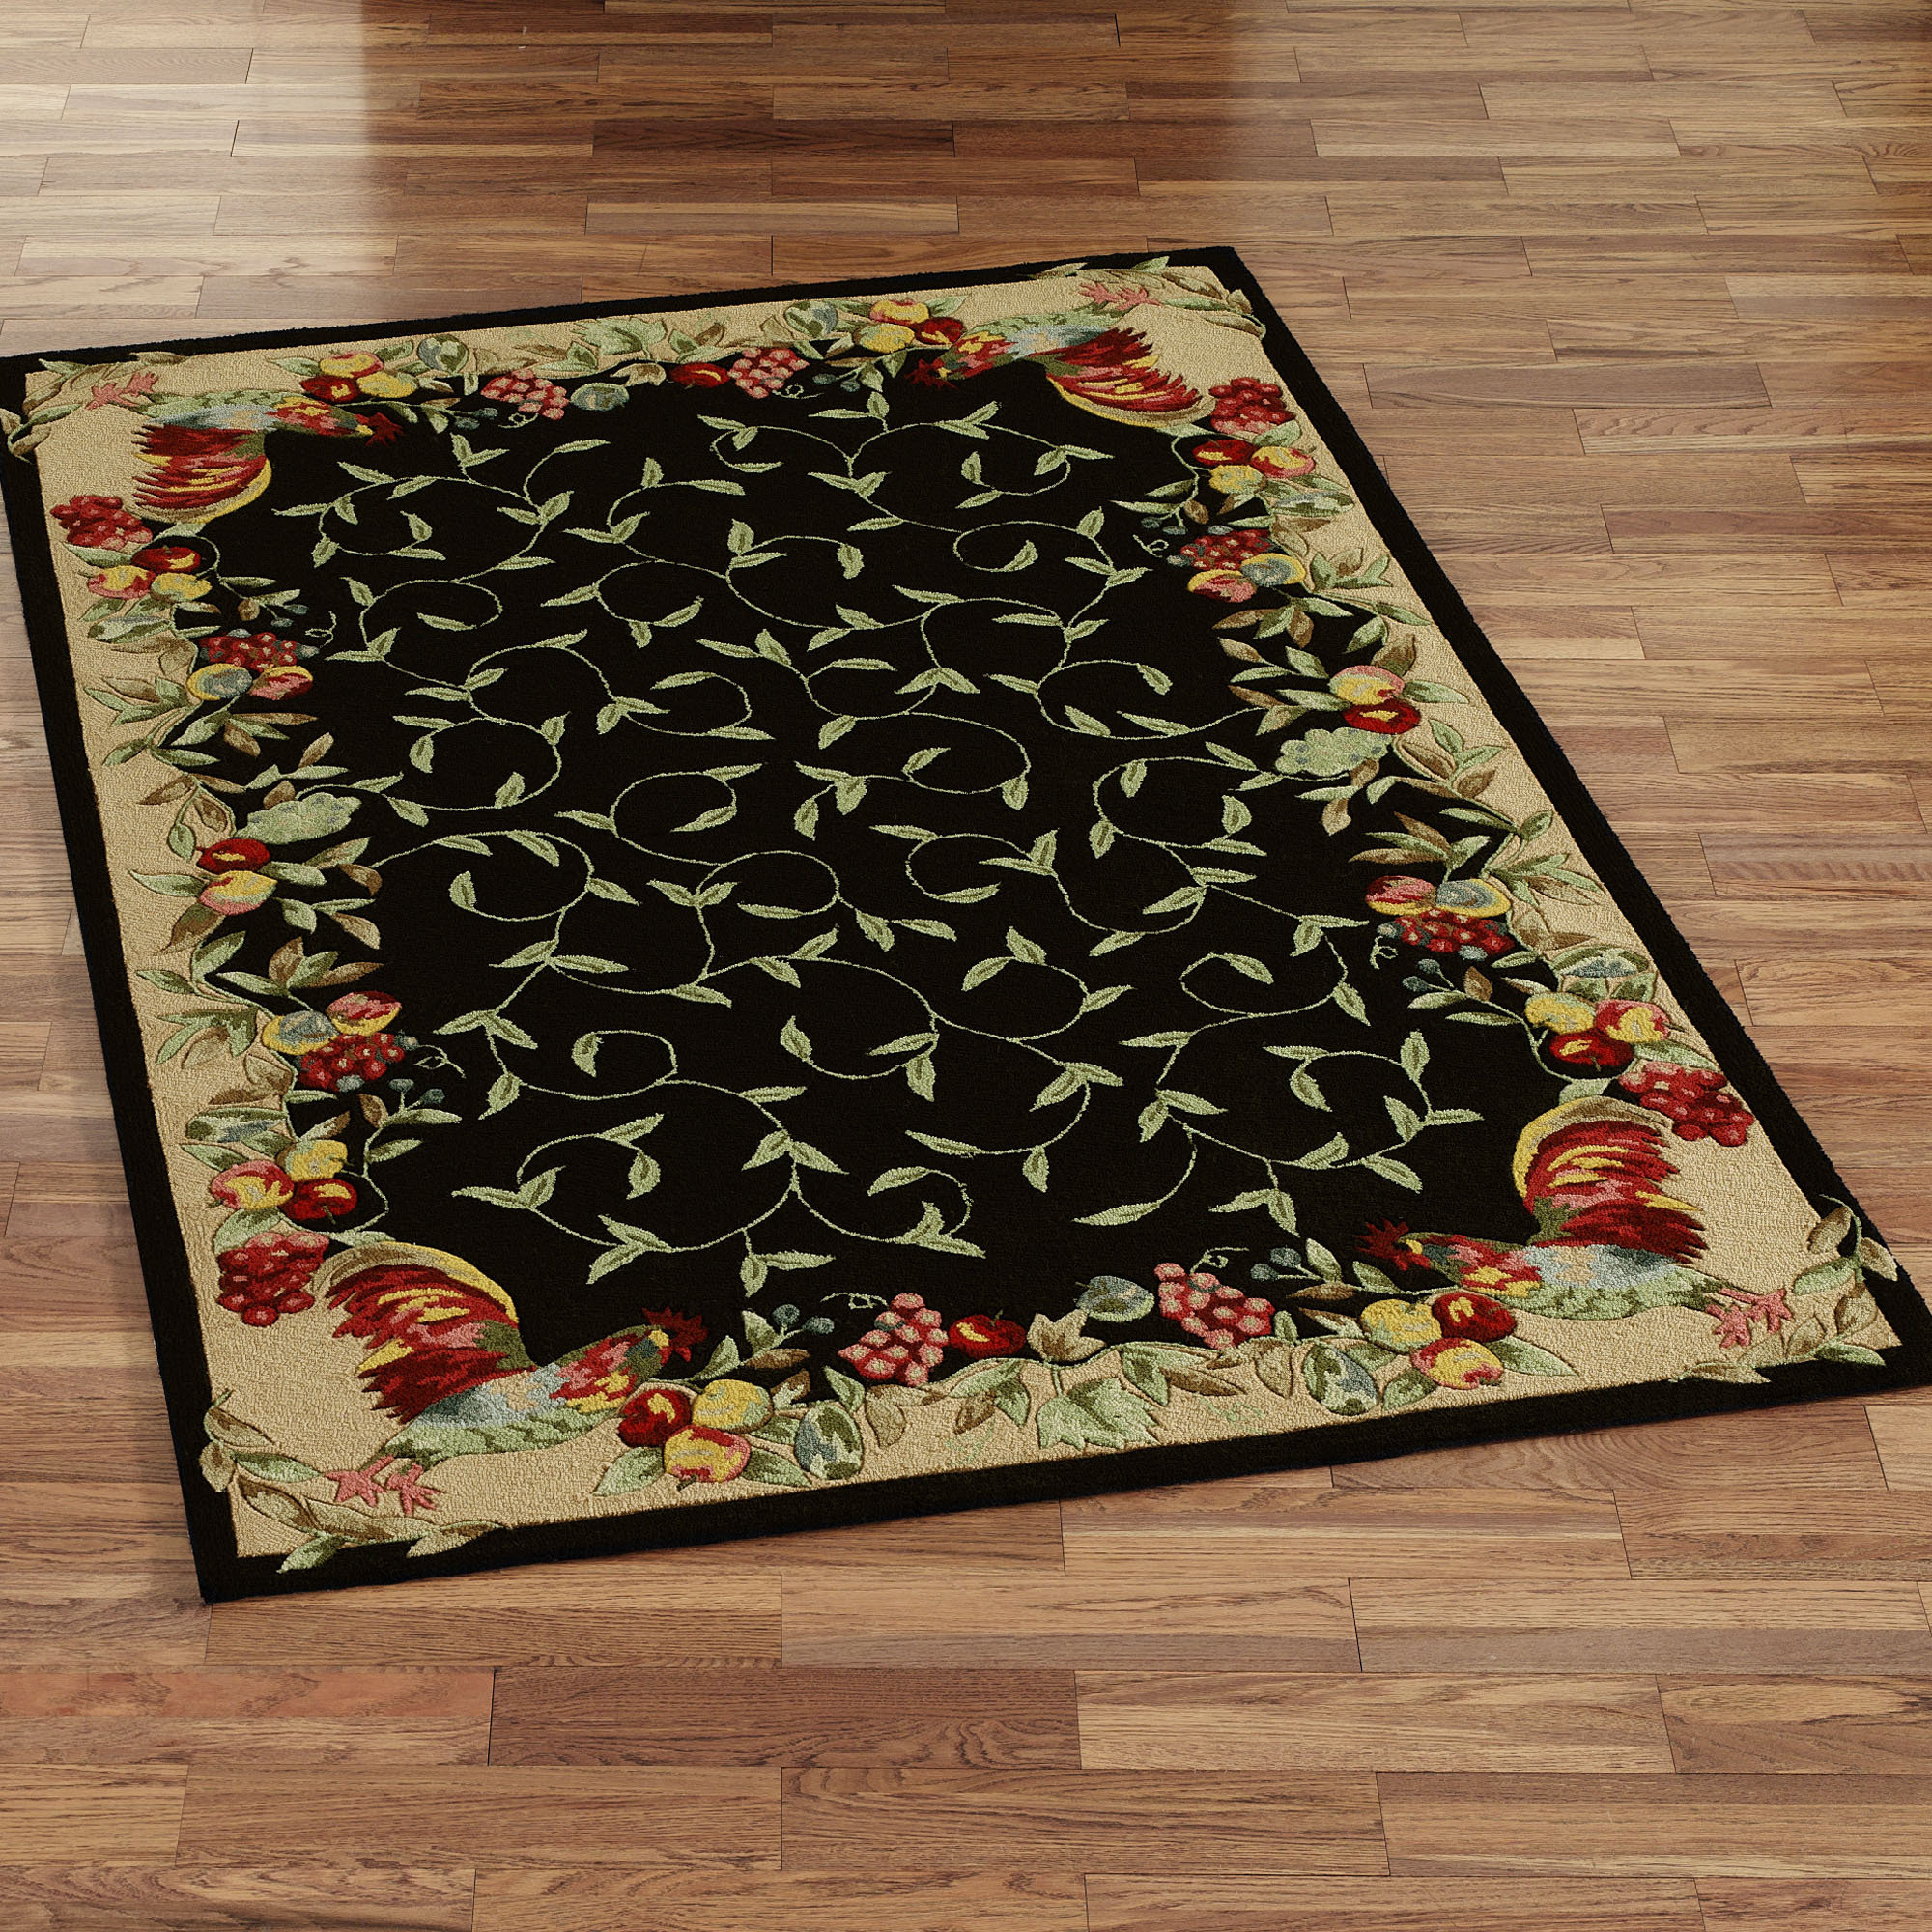 Rubber Rugs Images Kitchen With Roosters Ideas Eco